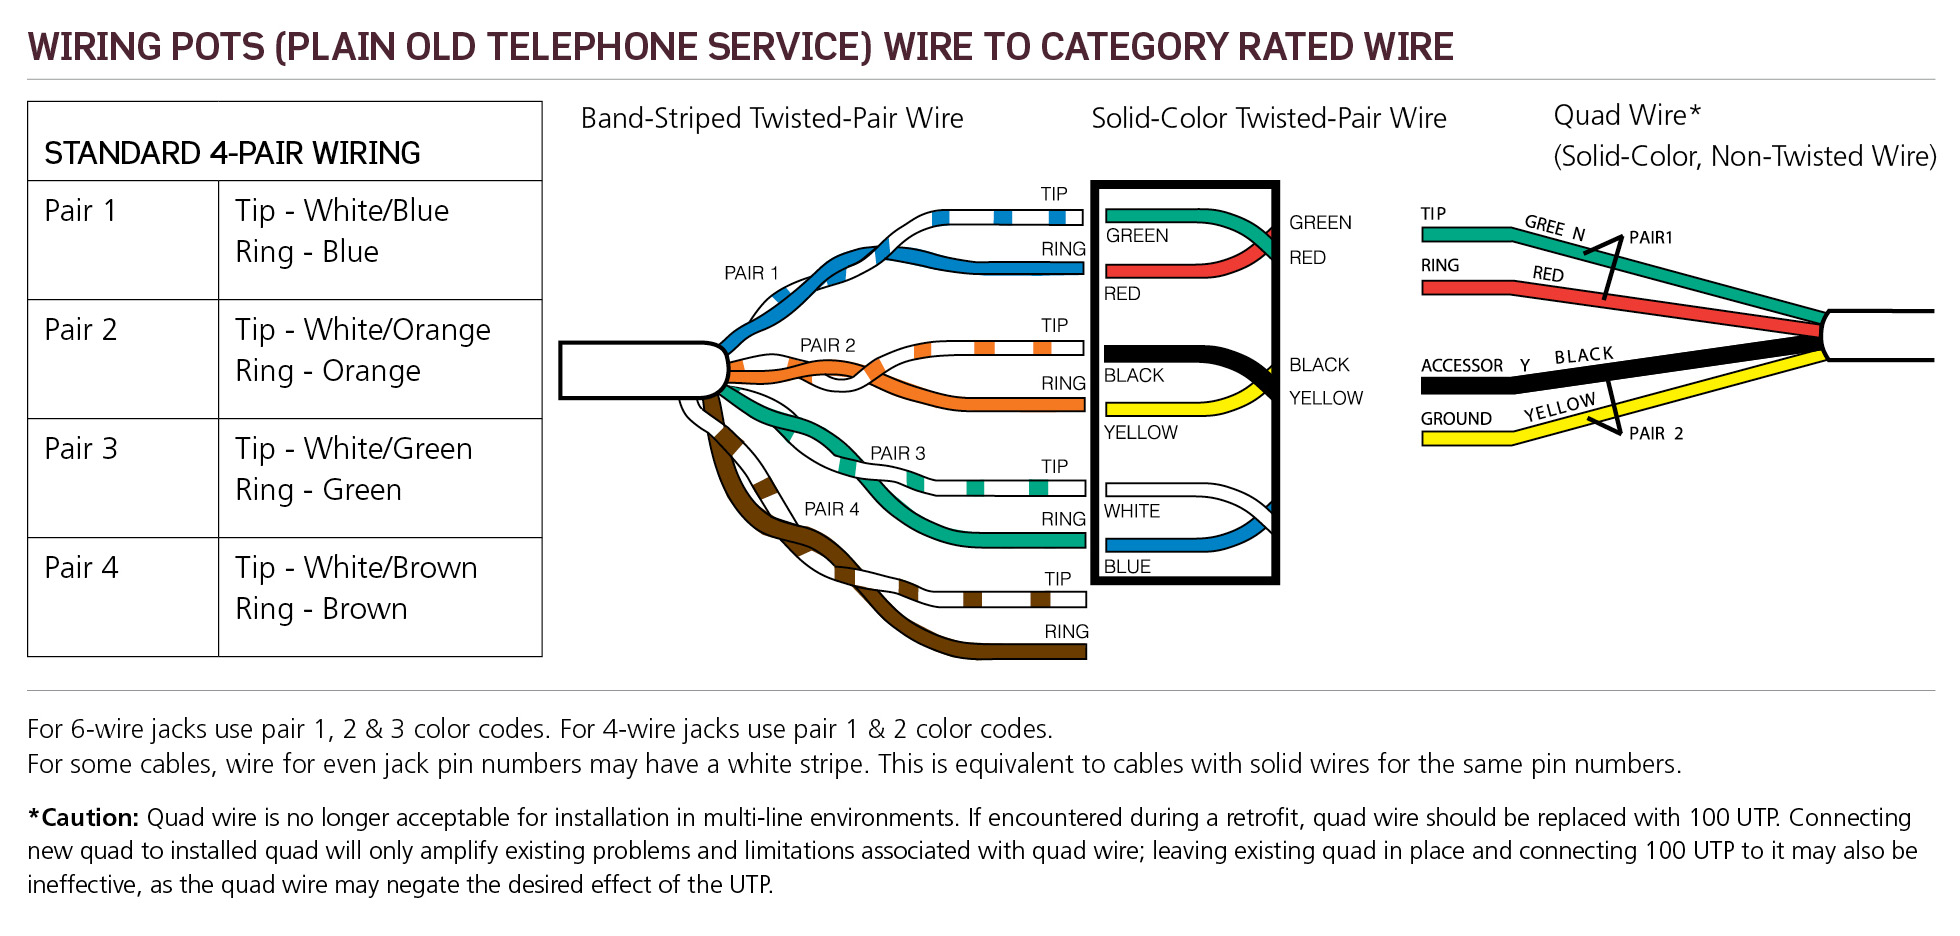 telephone plug wiring diagram moreover telephone extension wiring telephone extension socket phone wiring colour code diagram pictures [ 1960 x 936 Pixel ]